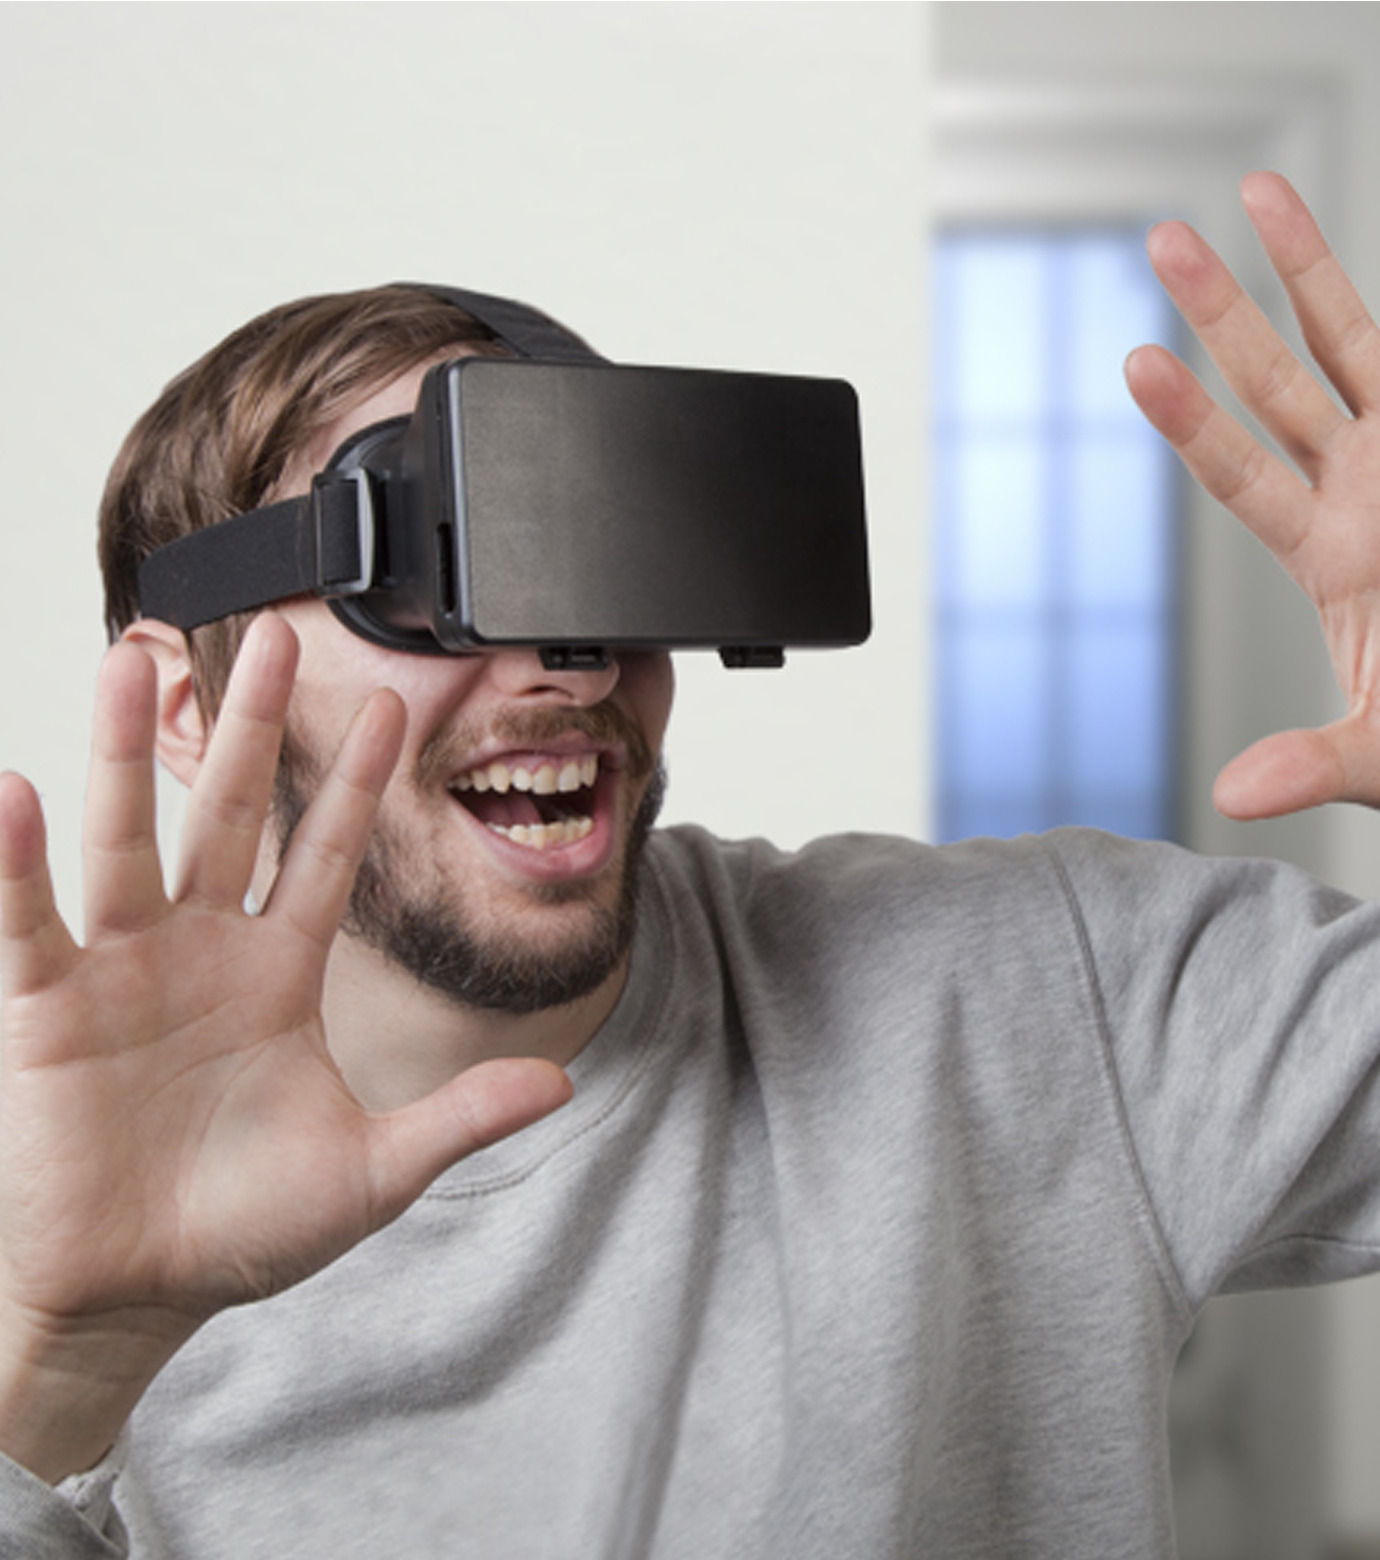 Thumbs Up(サムズアップ)のVIRTUAL REALITY HEADSET-BLACK(ガジェット/gadgets)-VIRTREALHD-13 拡大詳細画像6